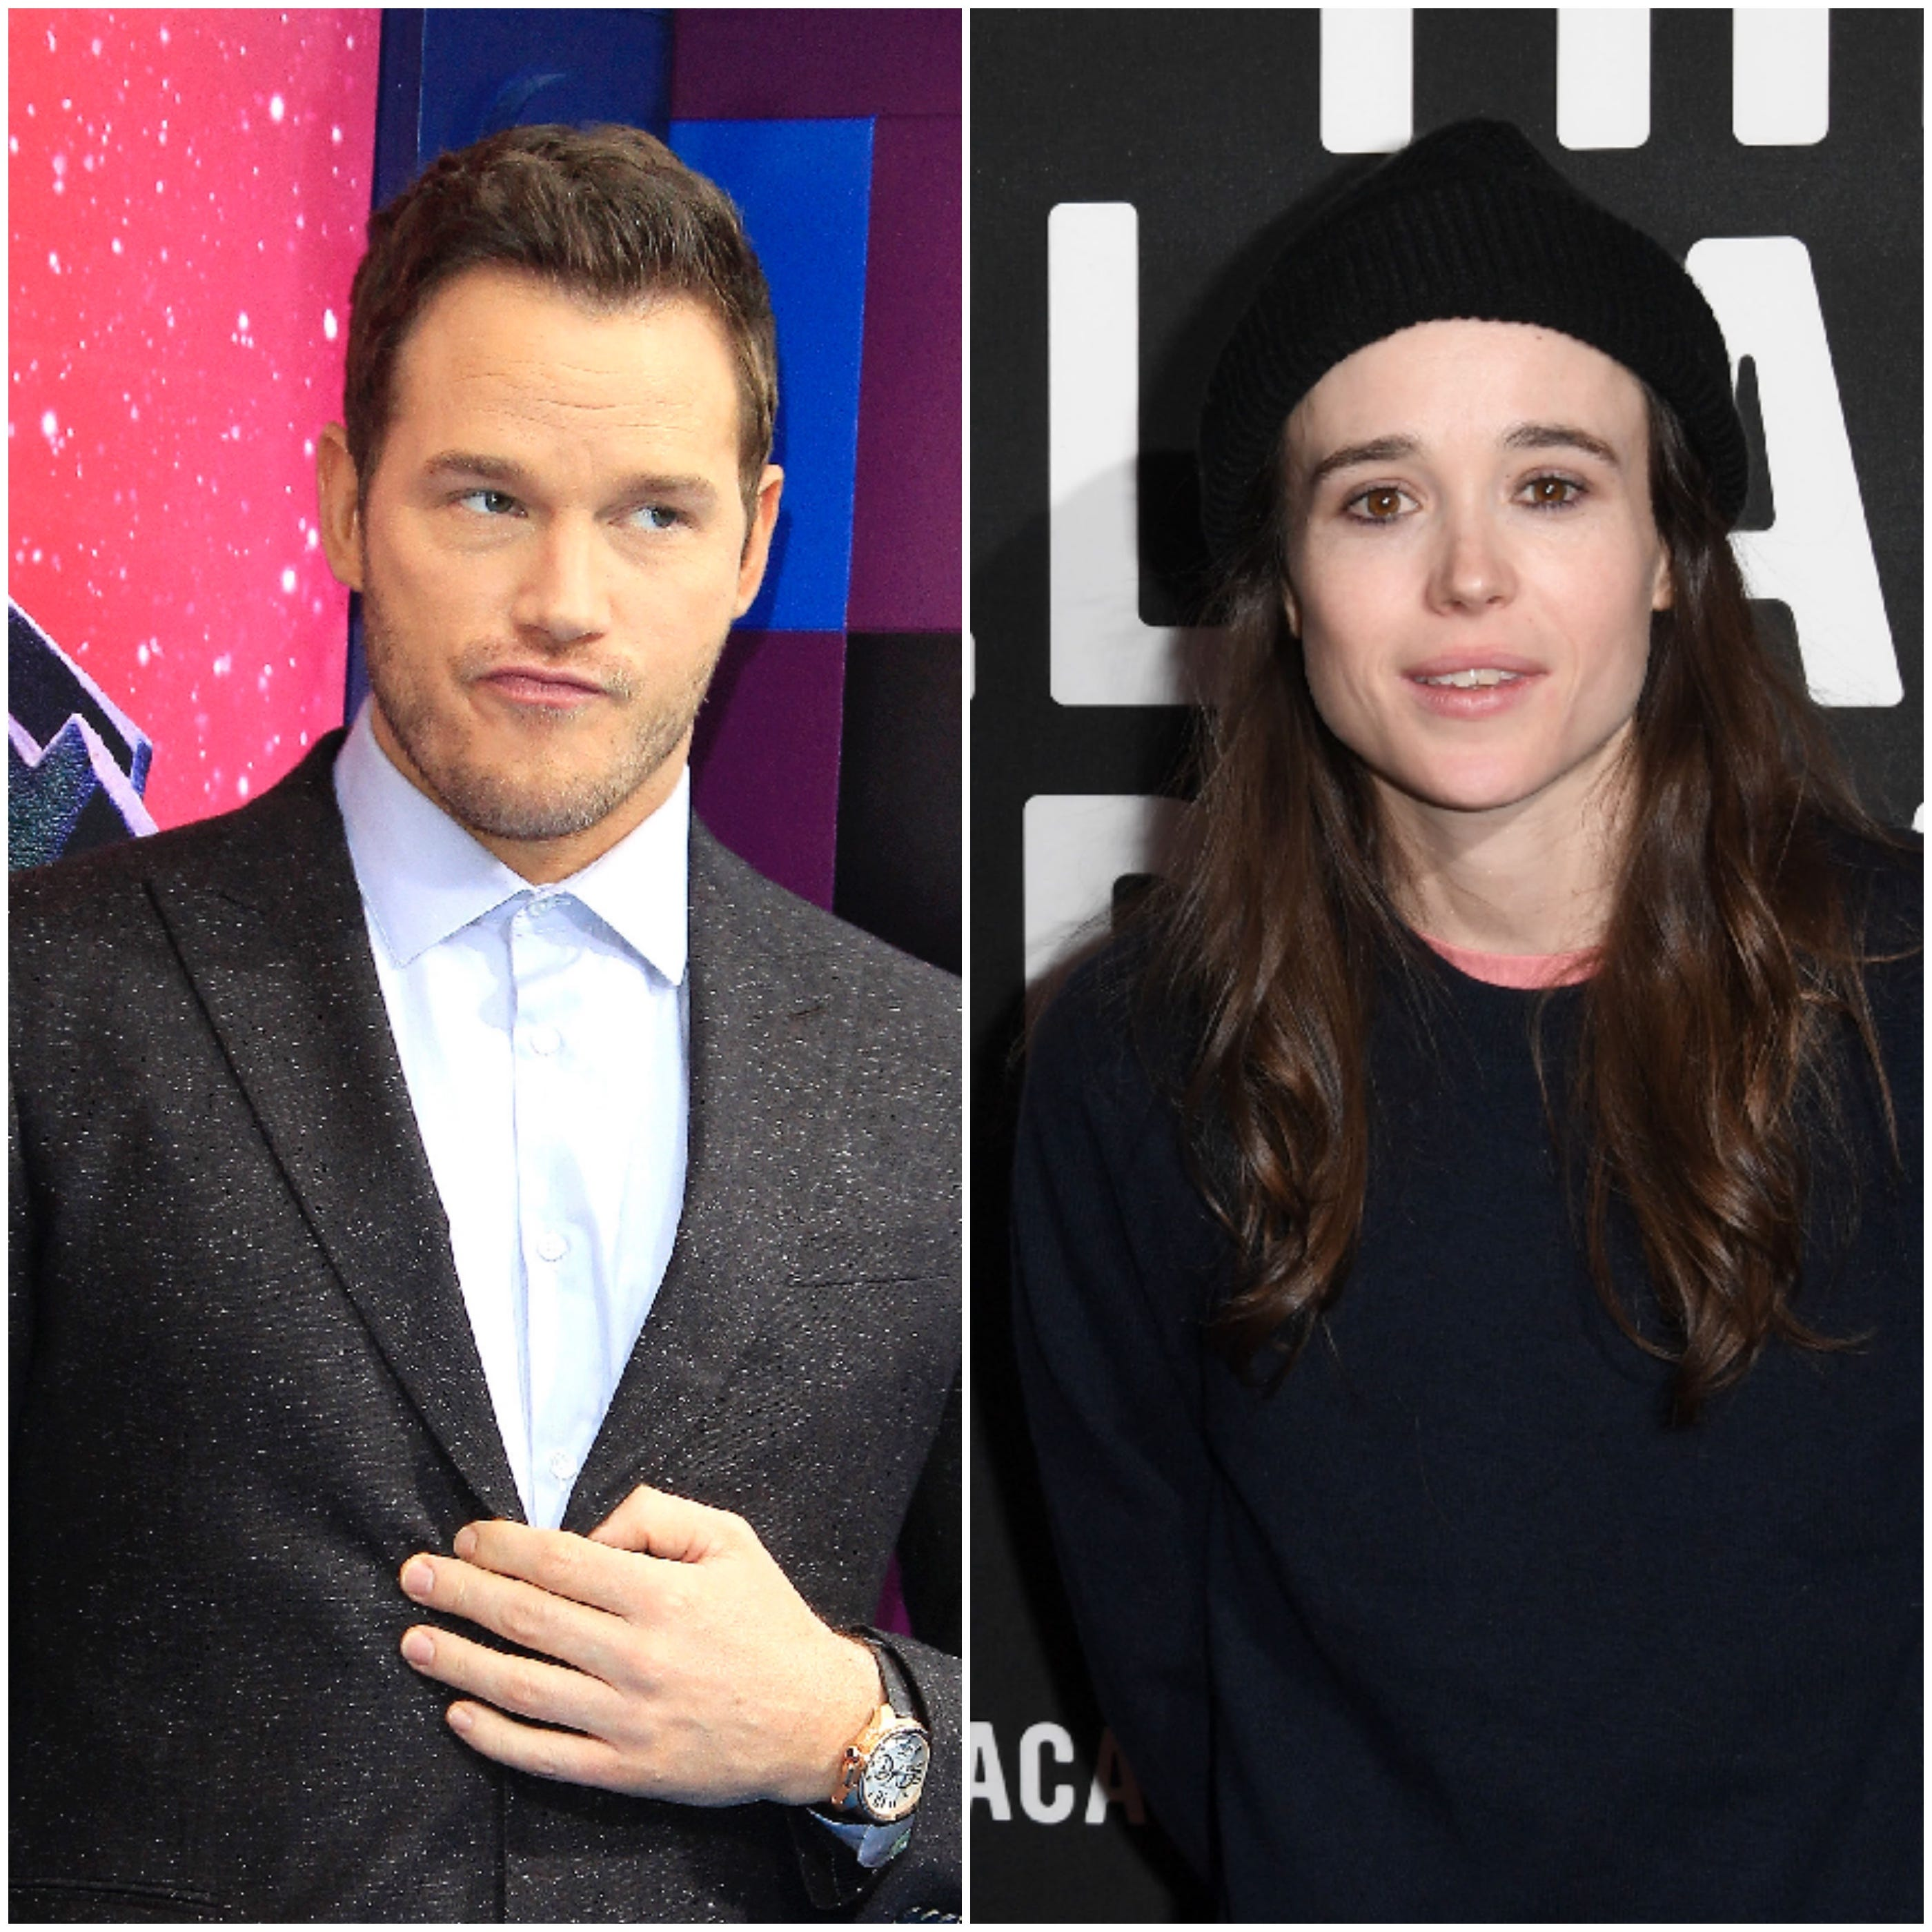 Chris Pratt defends church after Ellen Page calls it 'infamously anti-LGBTQ'